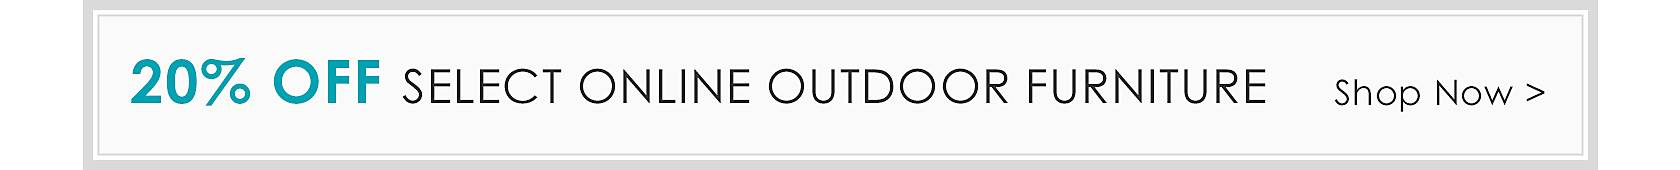 20% Off Select Outdoor Furniture - Online Only - Shop our coustomer favorites